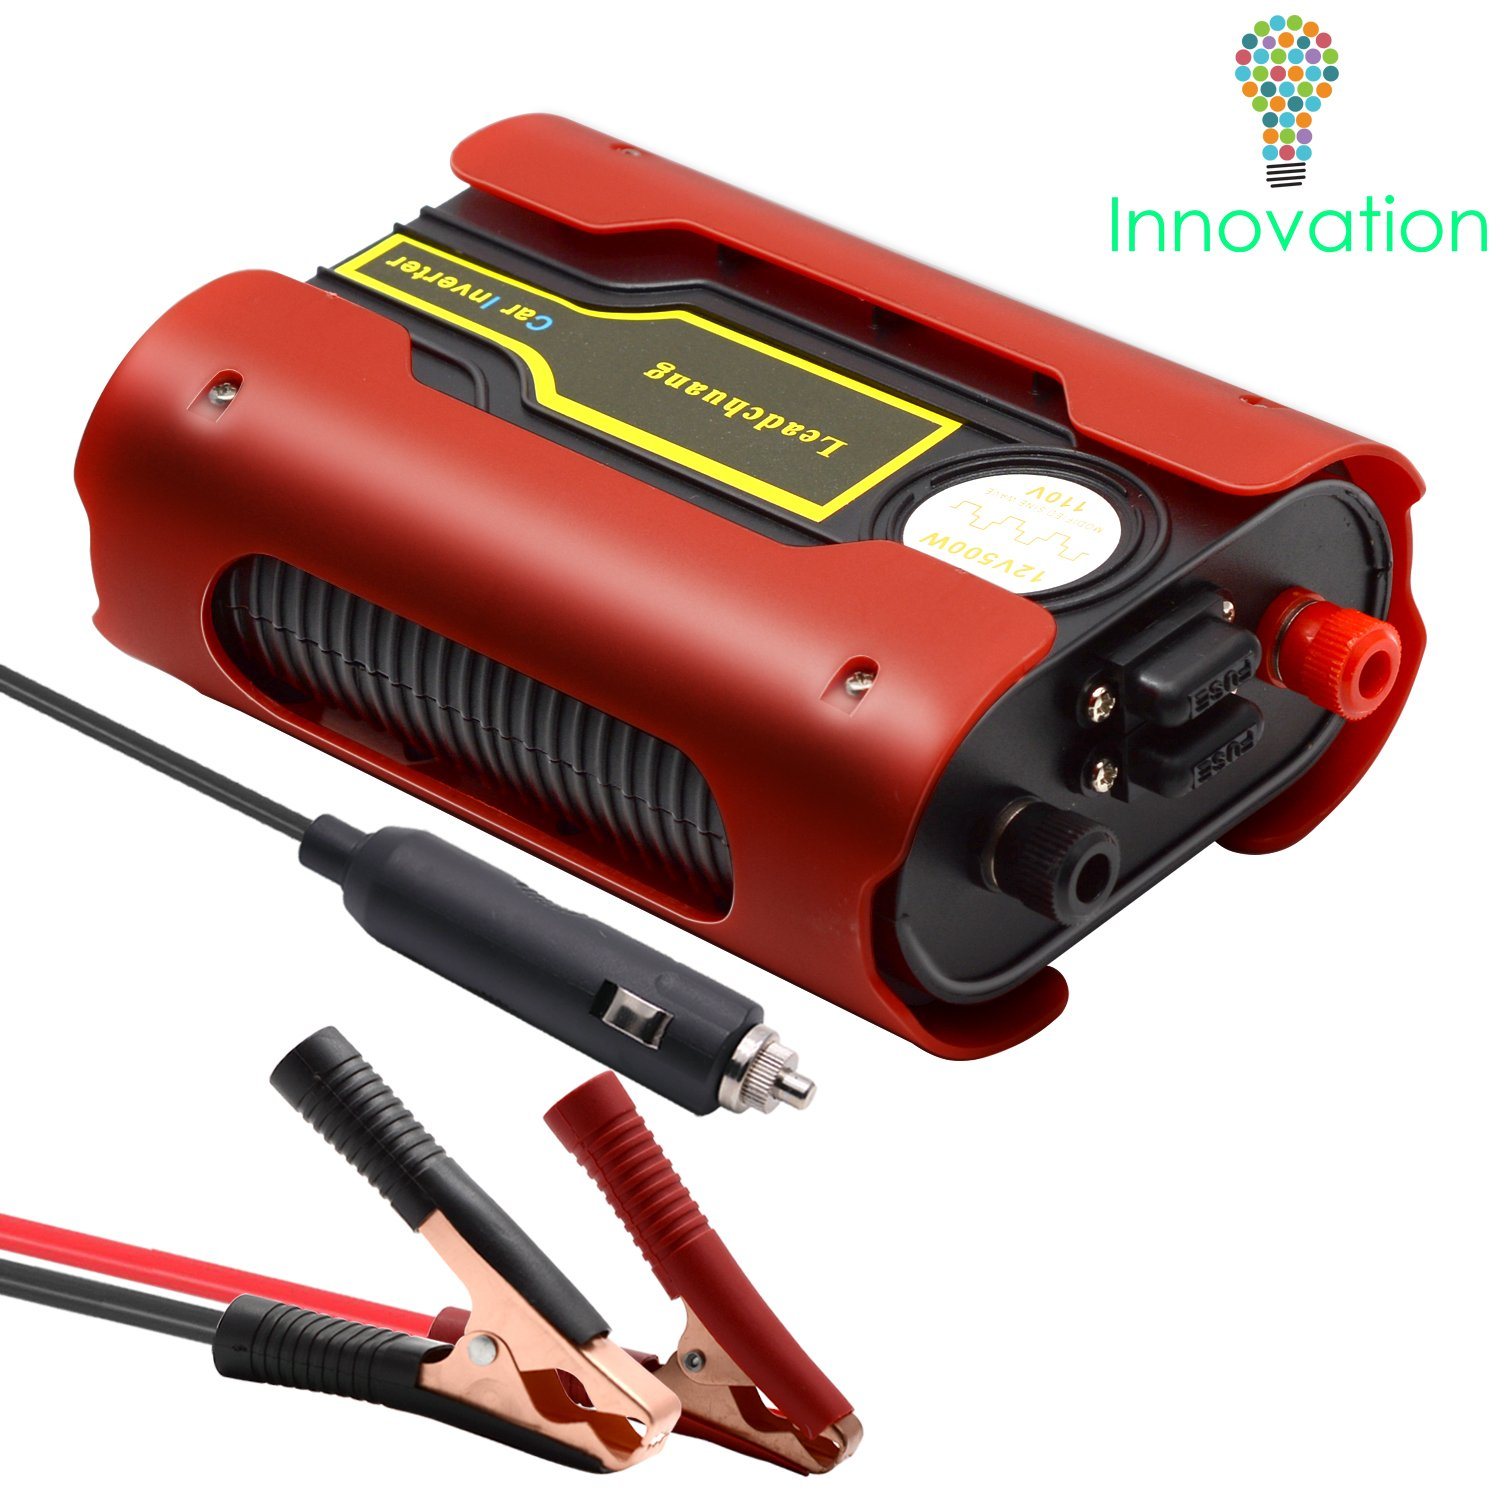 Car Power Inverter 500W, Auto Inverter DC to 110 Volts Power Inverter Car Charger, Leadchuang 12 Volt Inverter DC to AC Converter for Car with AC Outlet 4.8A Dual USB Charging Ports, Alligator Clips